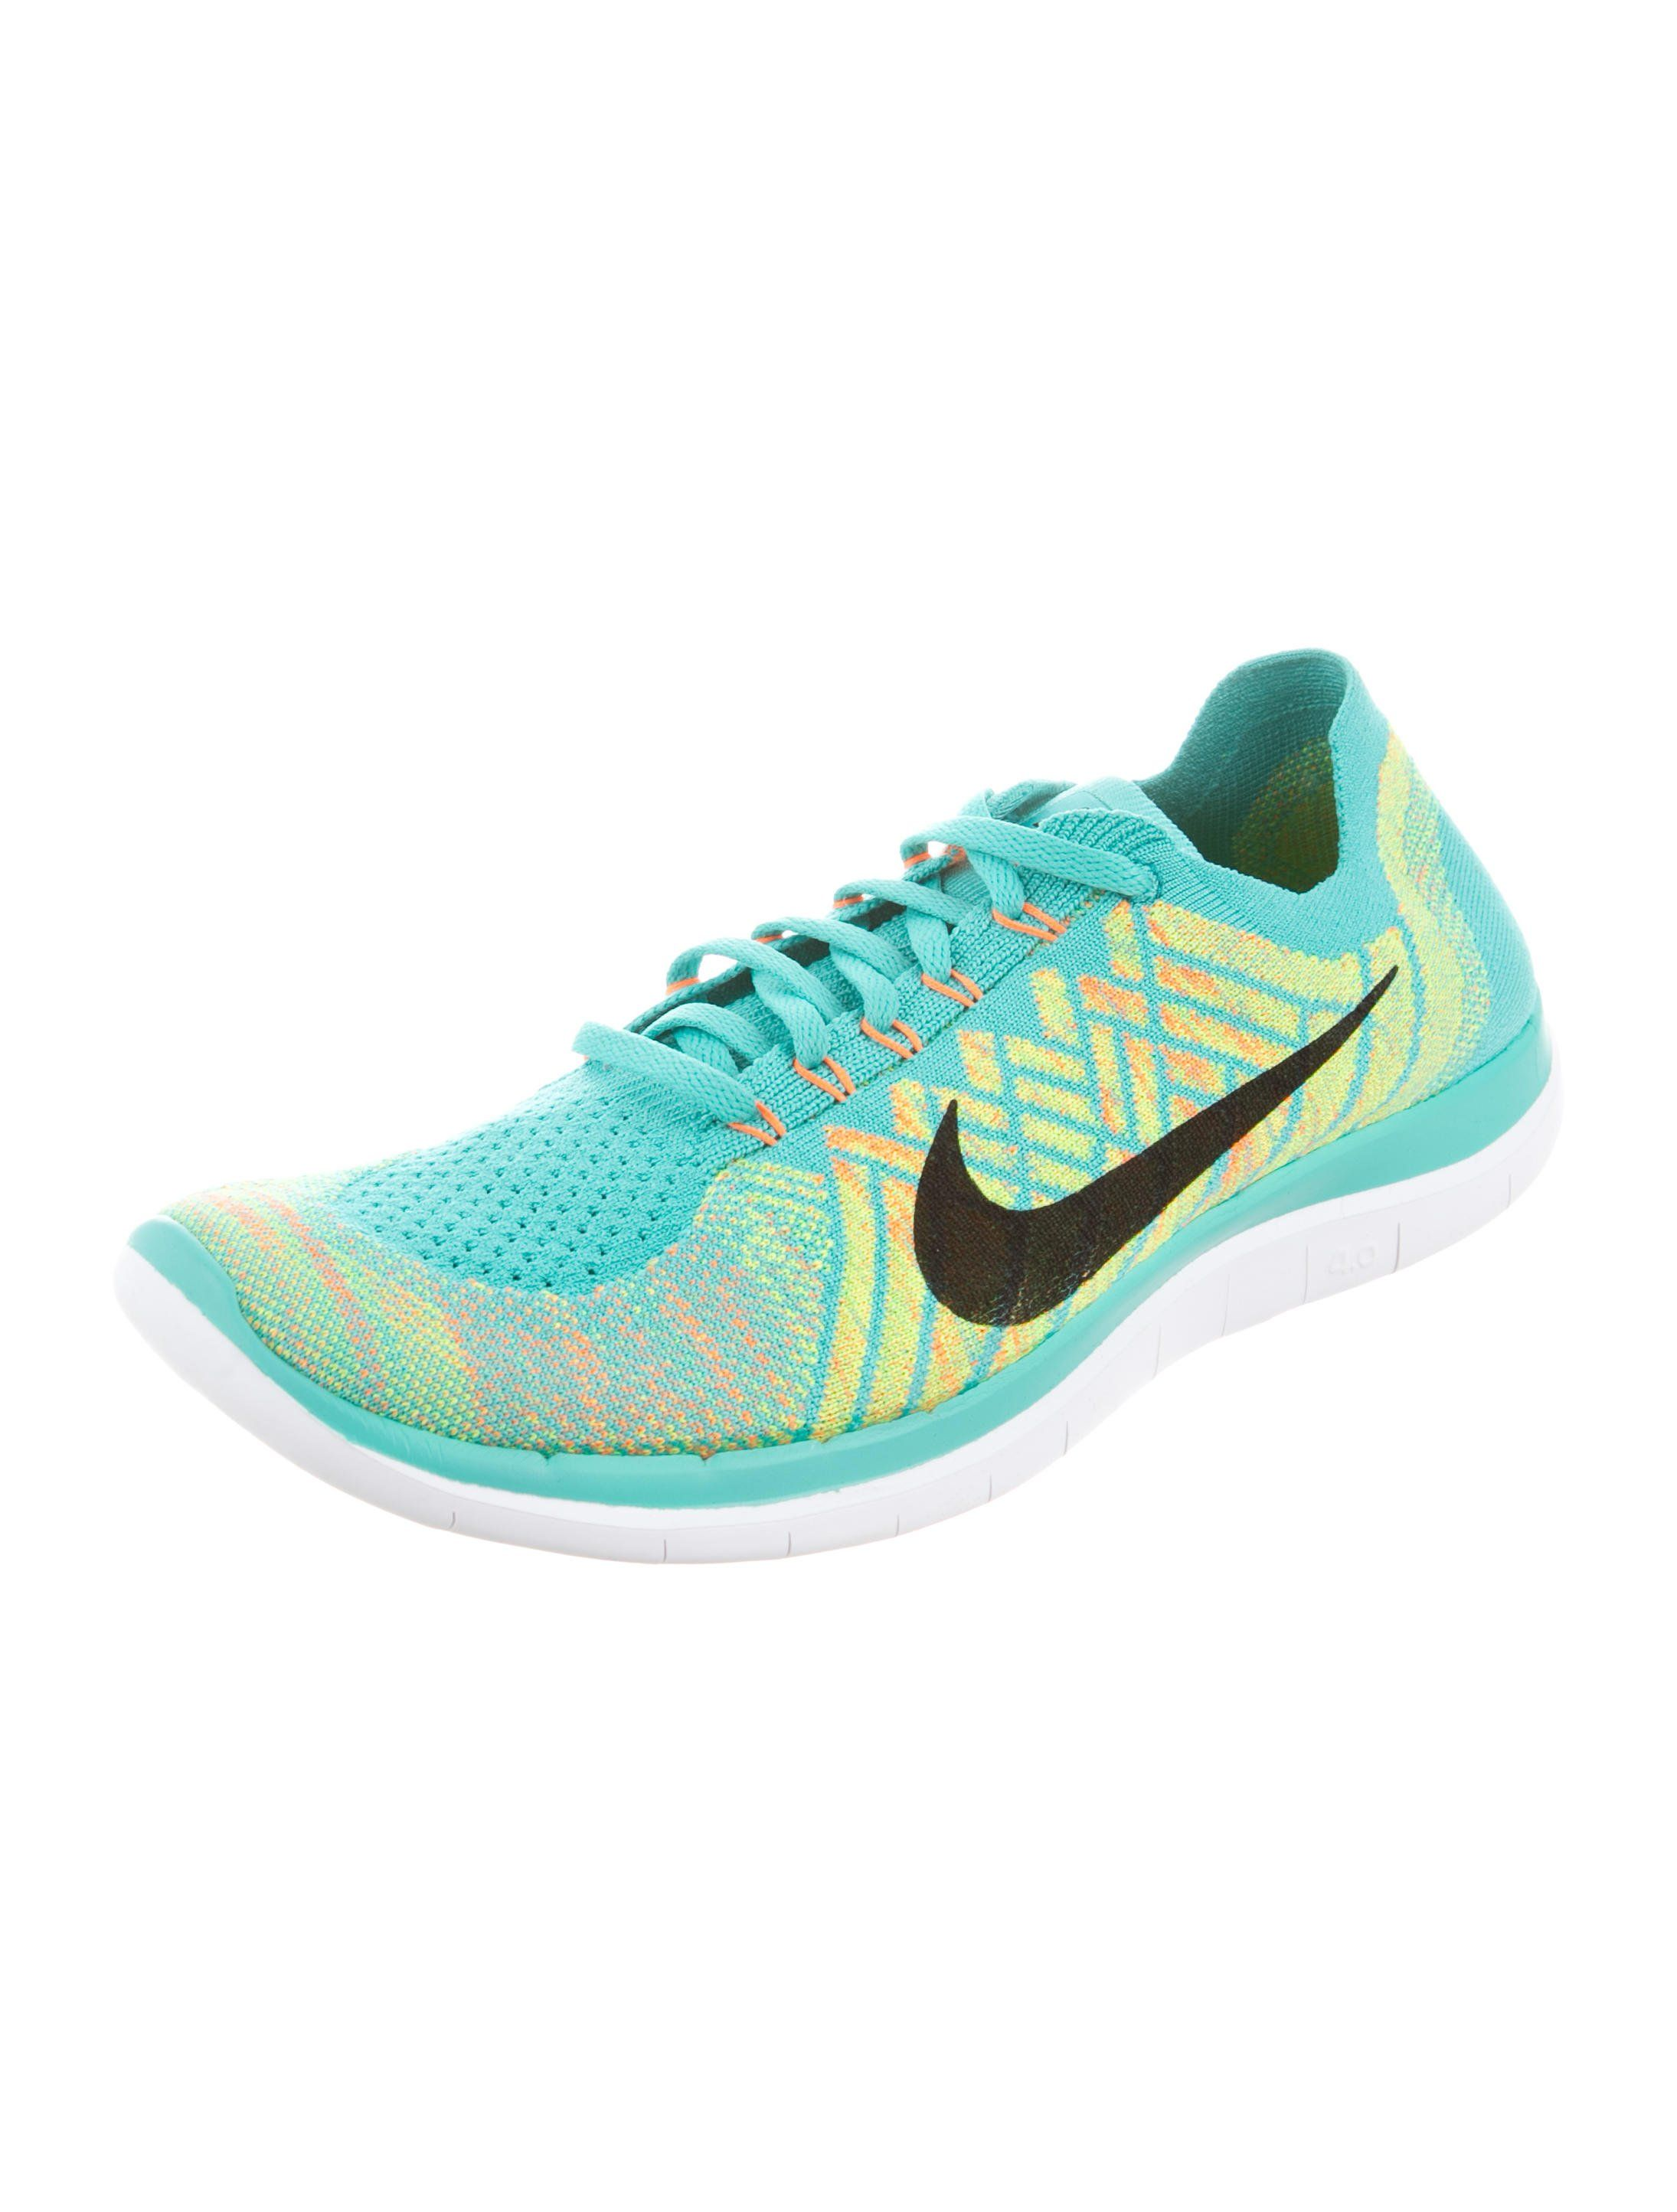 more photos 66af4 9f483 Free 4.0 Flyknit Sneakers | Street Styles Outfits | Sneakers ...